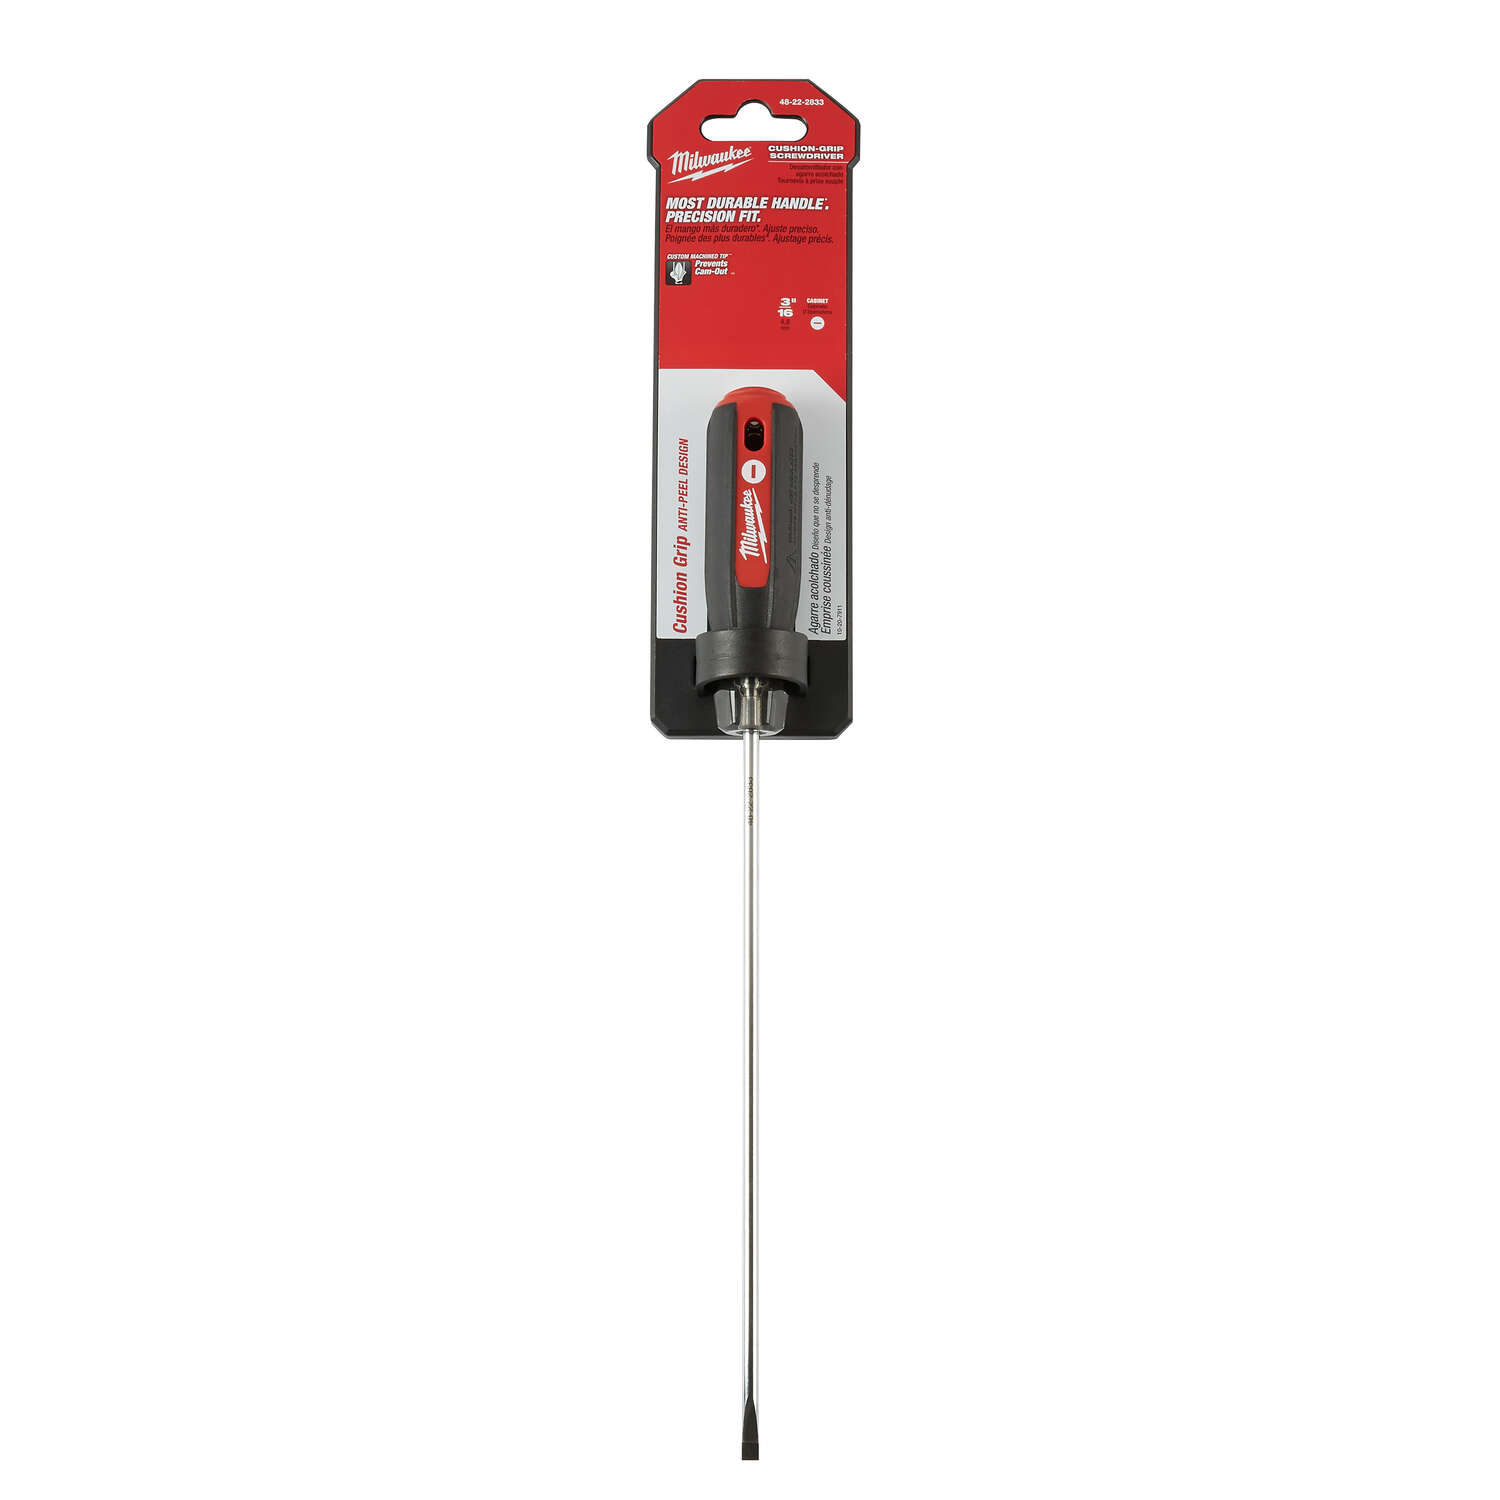 Milwaukee  8 in. Slotted Cabinet  3/16 in. Screwdriver  Chrome-Plated Steel  Red  1 pc. Cushion Grip